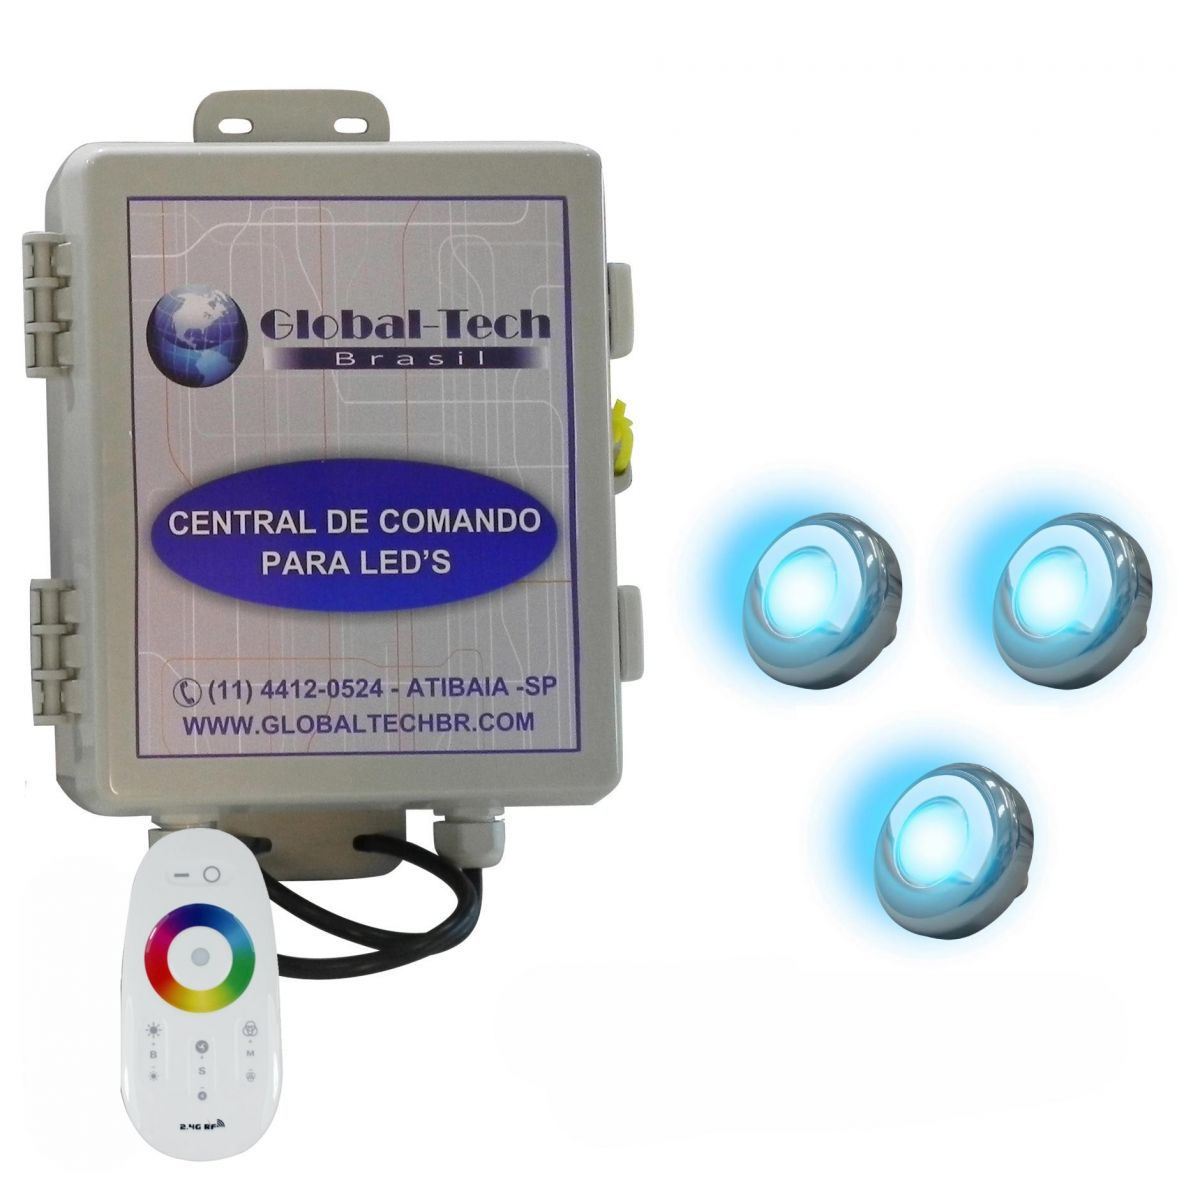 Led Piscina - Kit 3 Led Tholz 9W Inox RGB + Central + Controle Touch